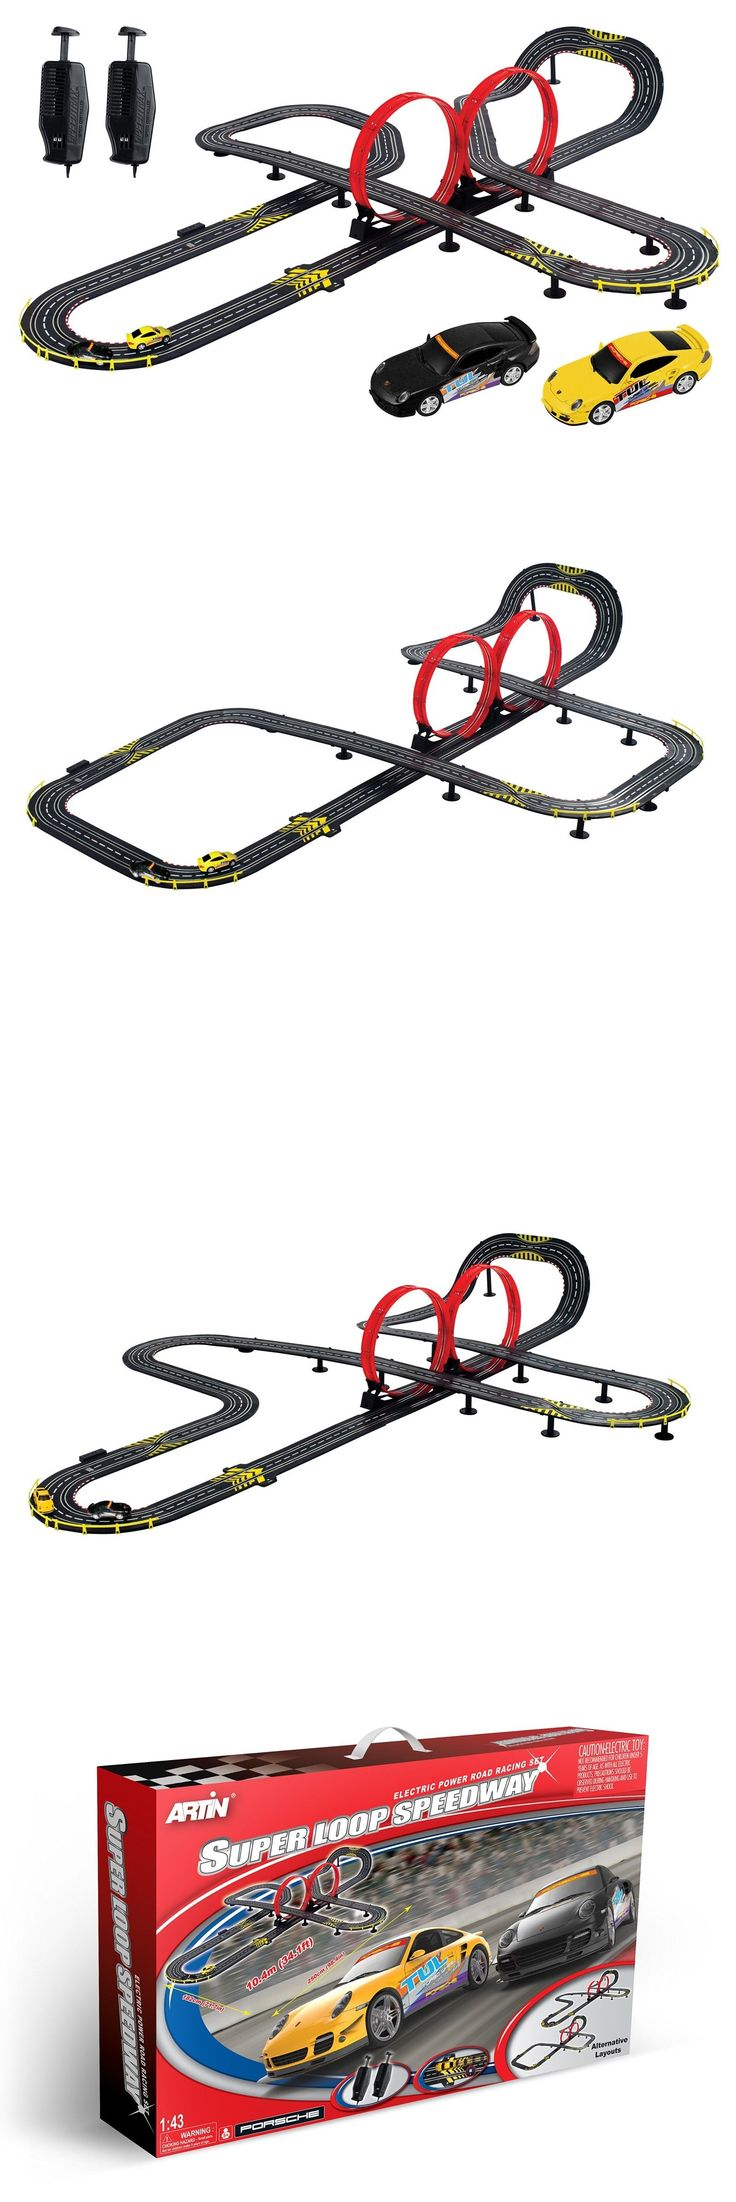 1970-Now 152936: Artin 143 Scale Super Loop Speedway Slot Car Racing Set With Porsche 911 Cars -> BUY IT NOW ONLY: $109.9 on eBay!